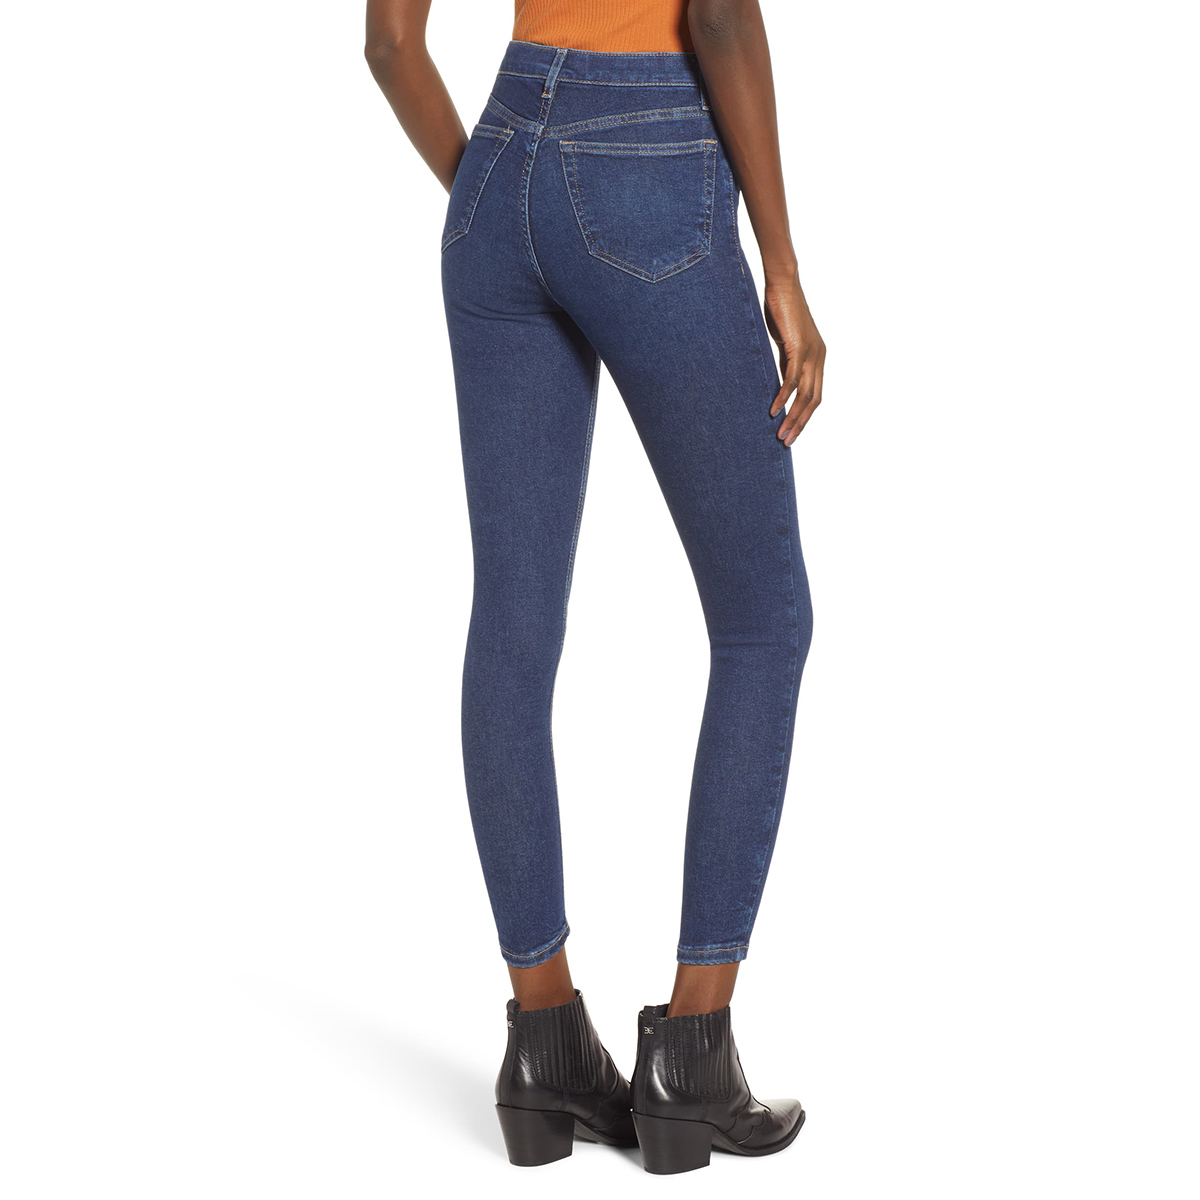 These Topshop Jeans Are 50% Off And Fit Like Stretchy Leggings